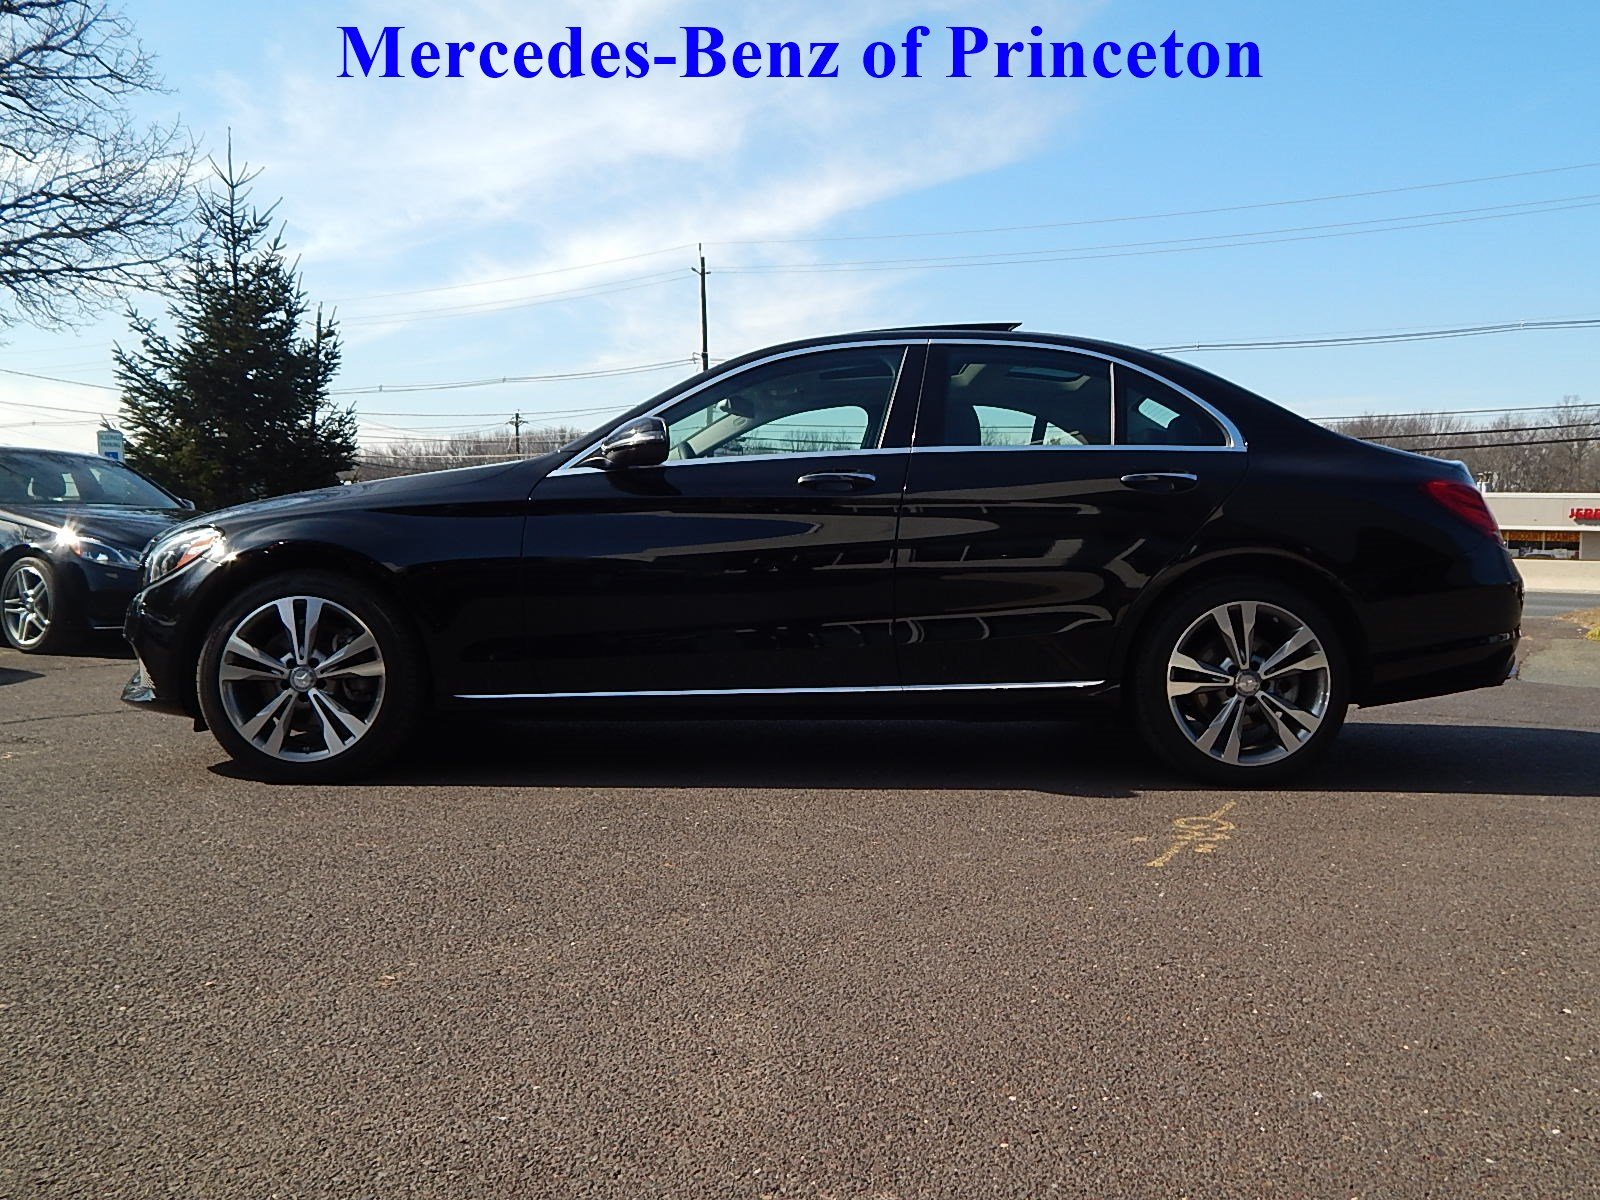 Certified pre owned vehicles mercedes benz of princeton for Certified pre owned mercedes benz